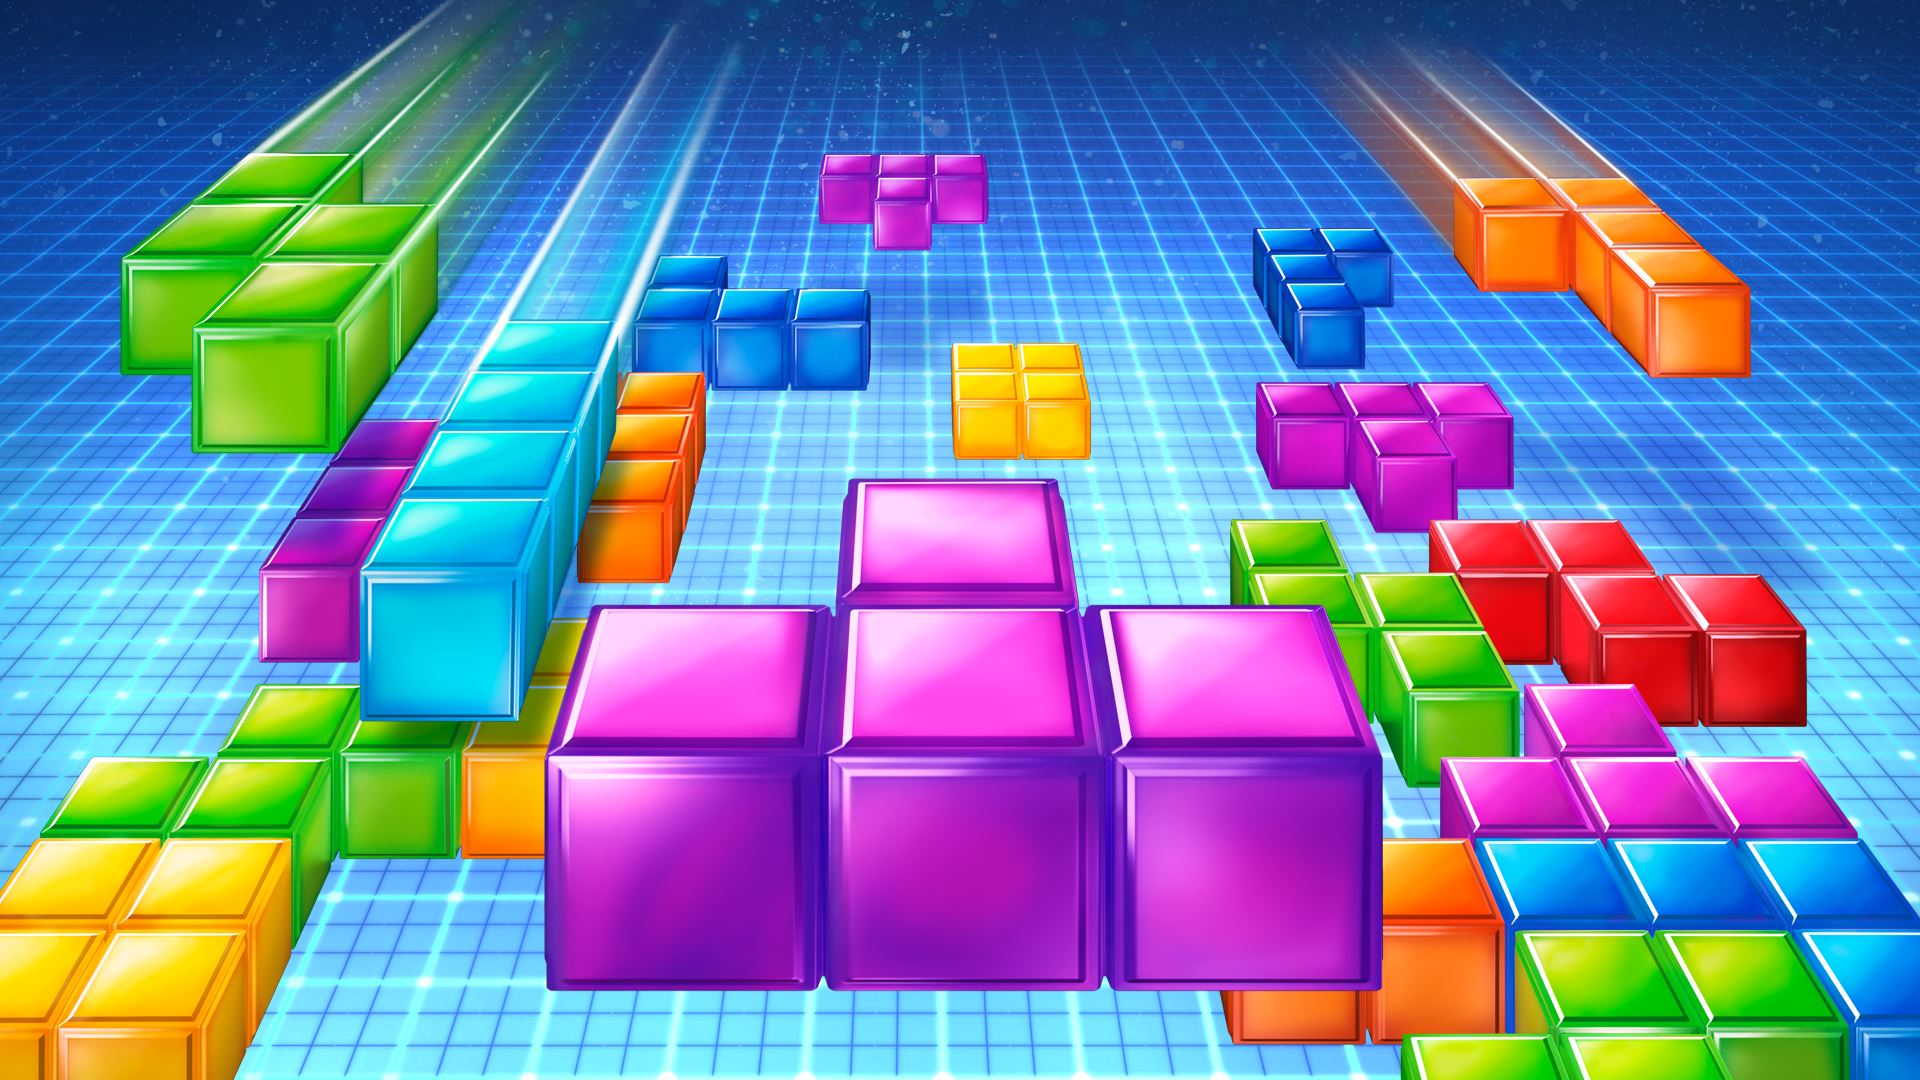 28 Tetris High Resolution Backgrounds GsFDcY 1920x1080